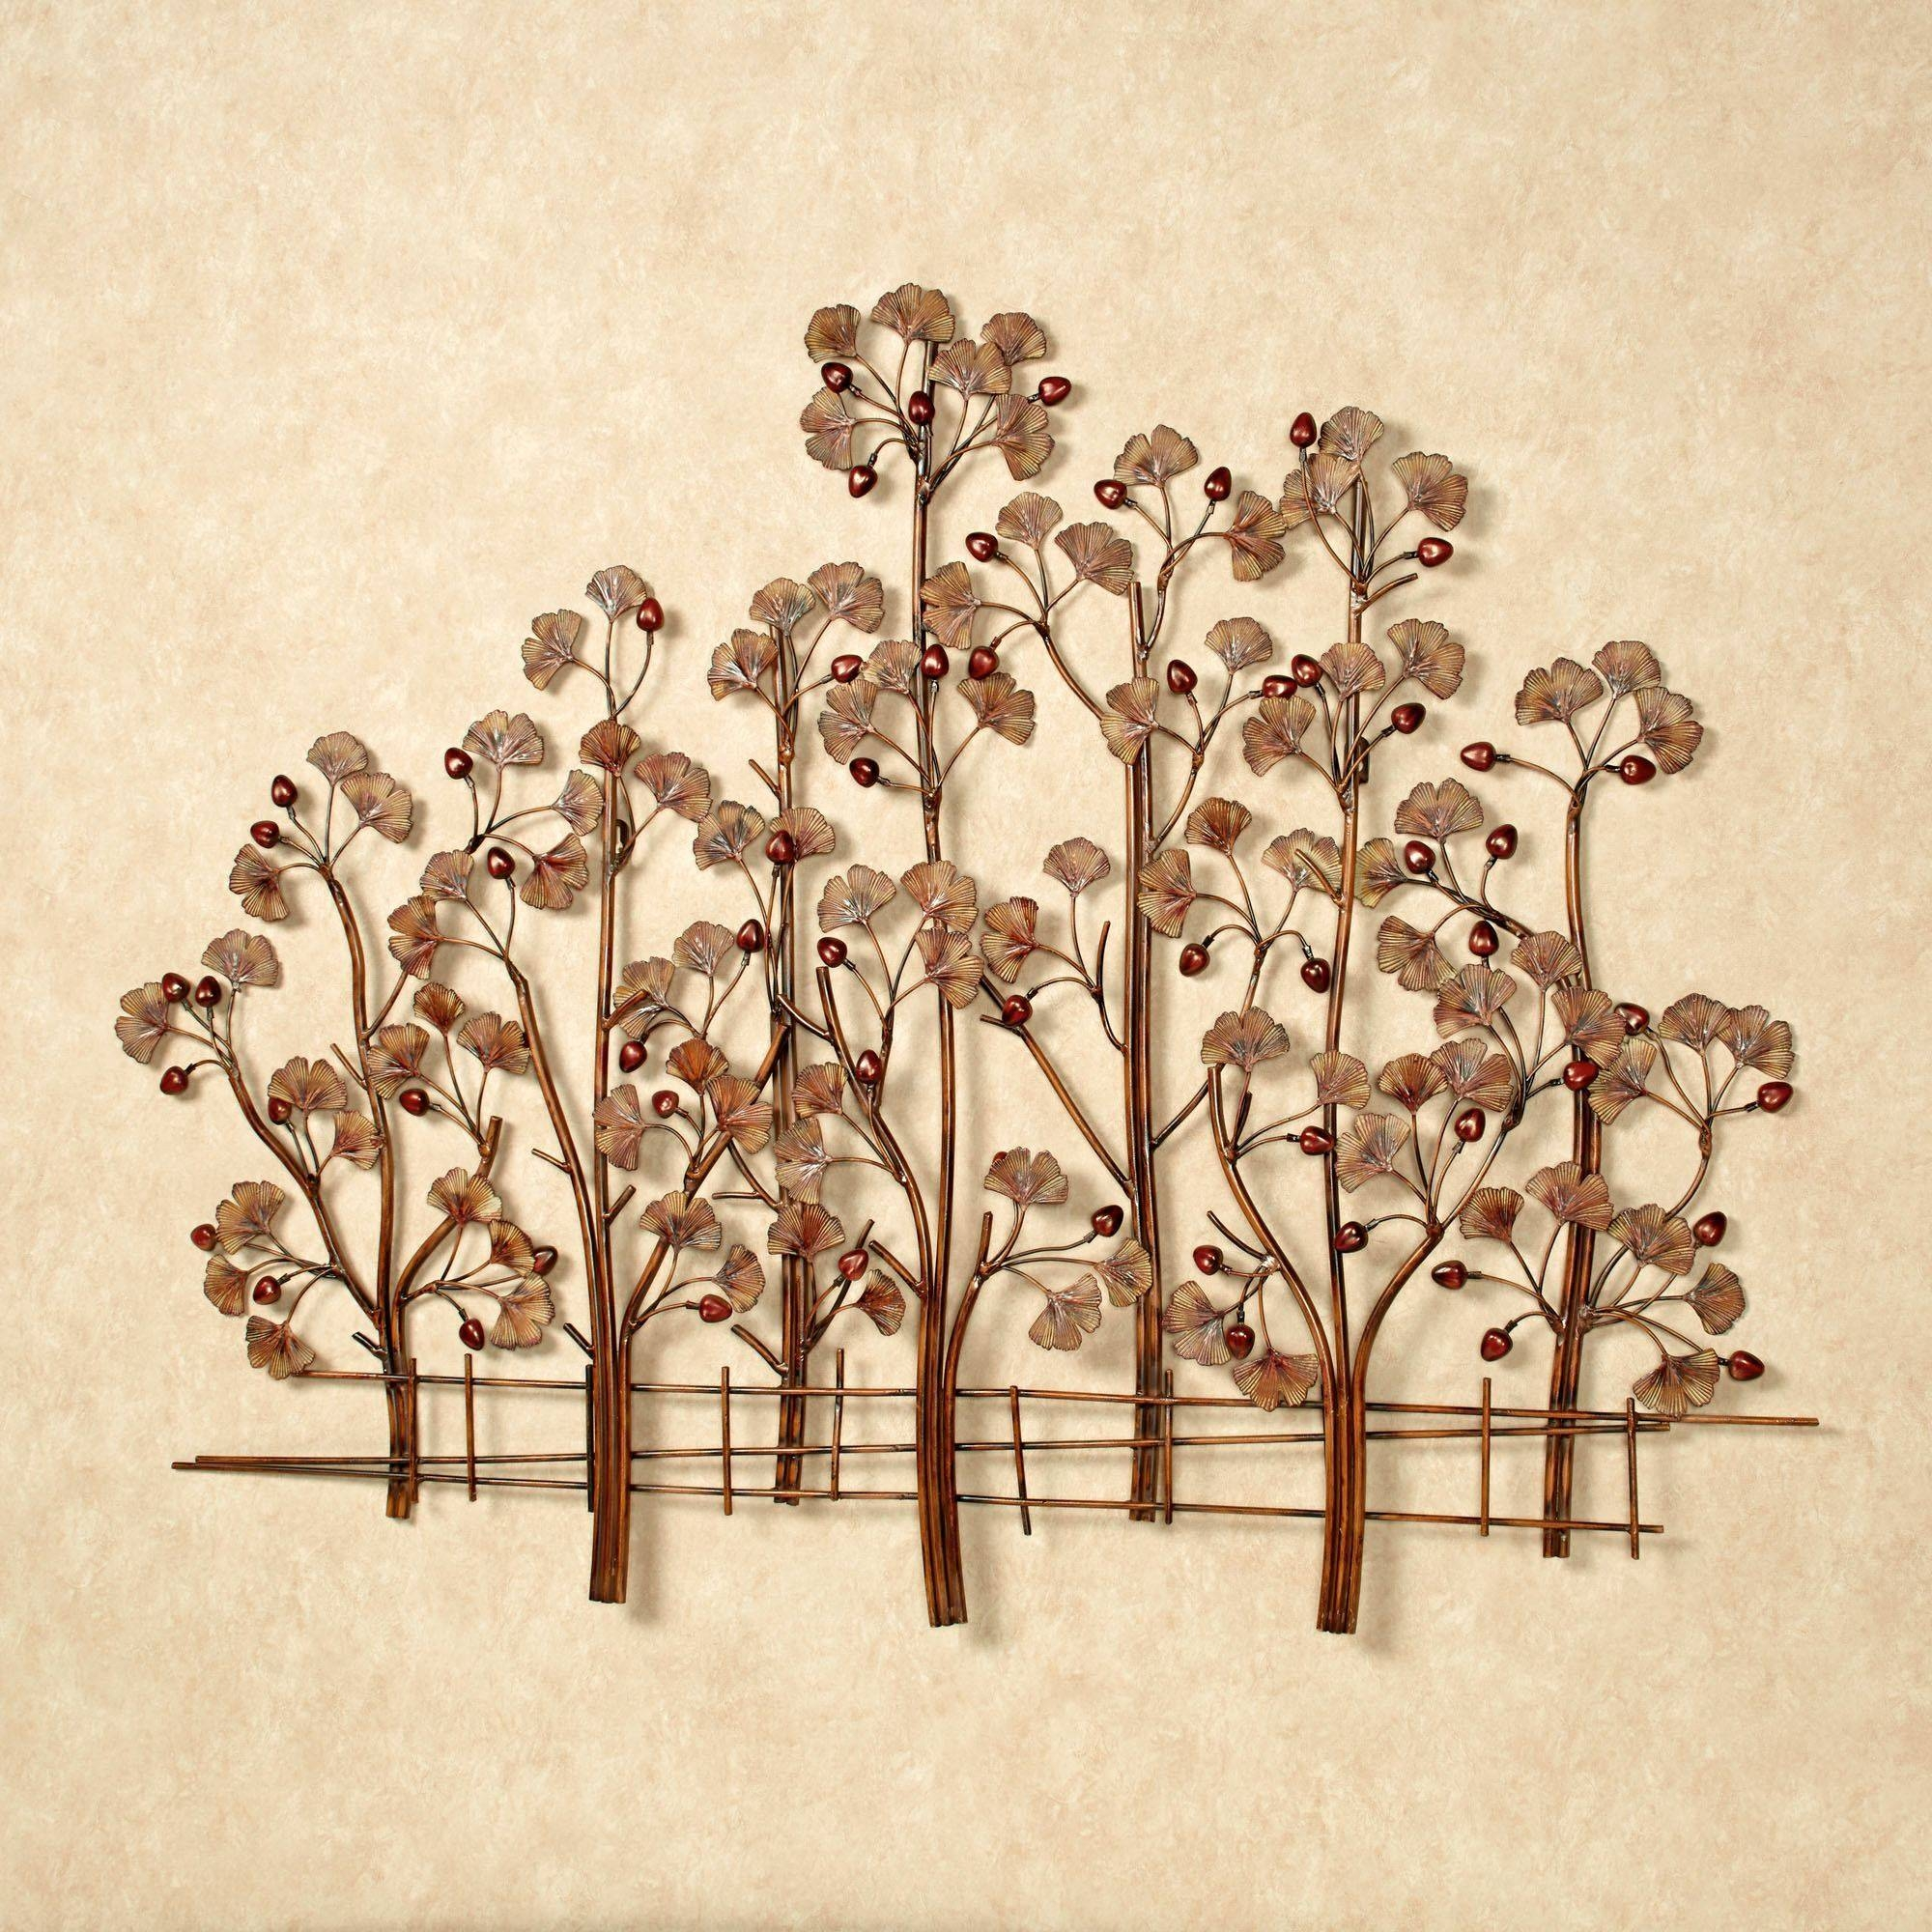 Ginkgo Tree Metal Wall Sculpture Pertaining To Current Metal Wall Art Trees (View 4 of 20)